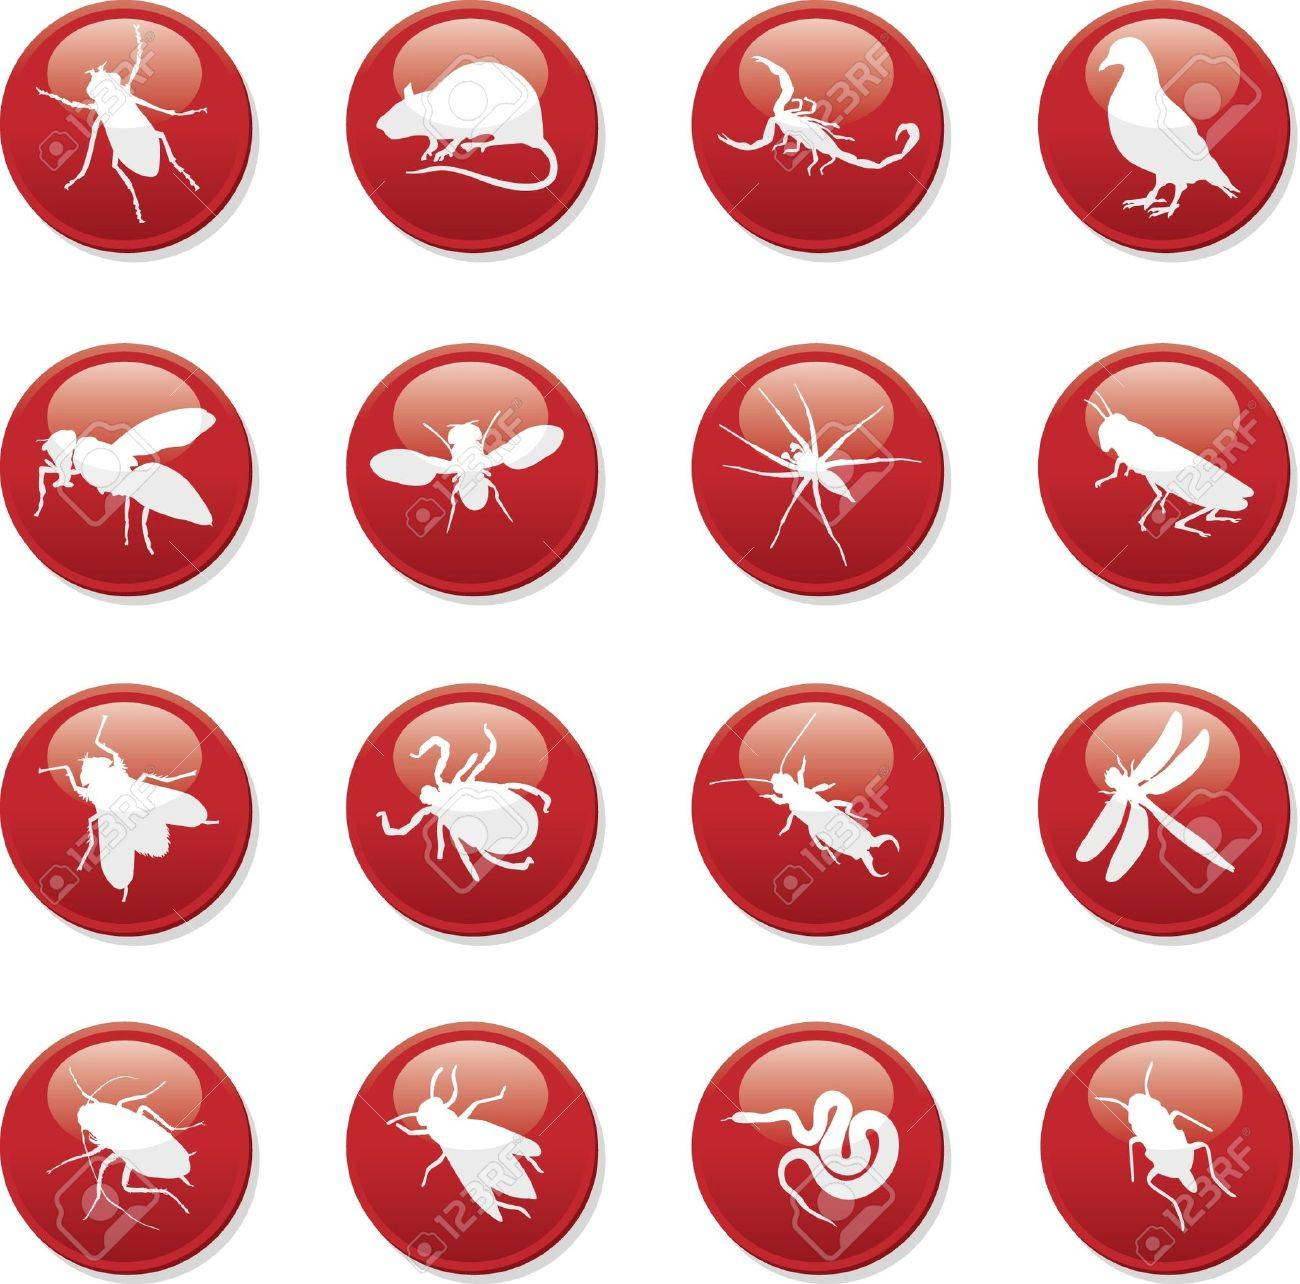 rodent and pest buttons Stock Vector - 7742270